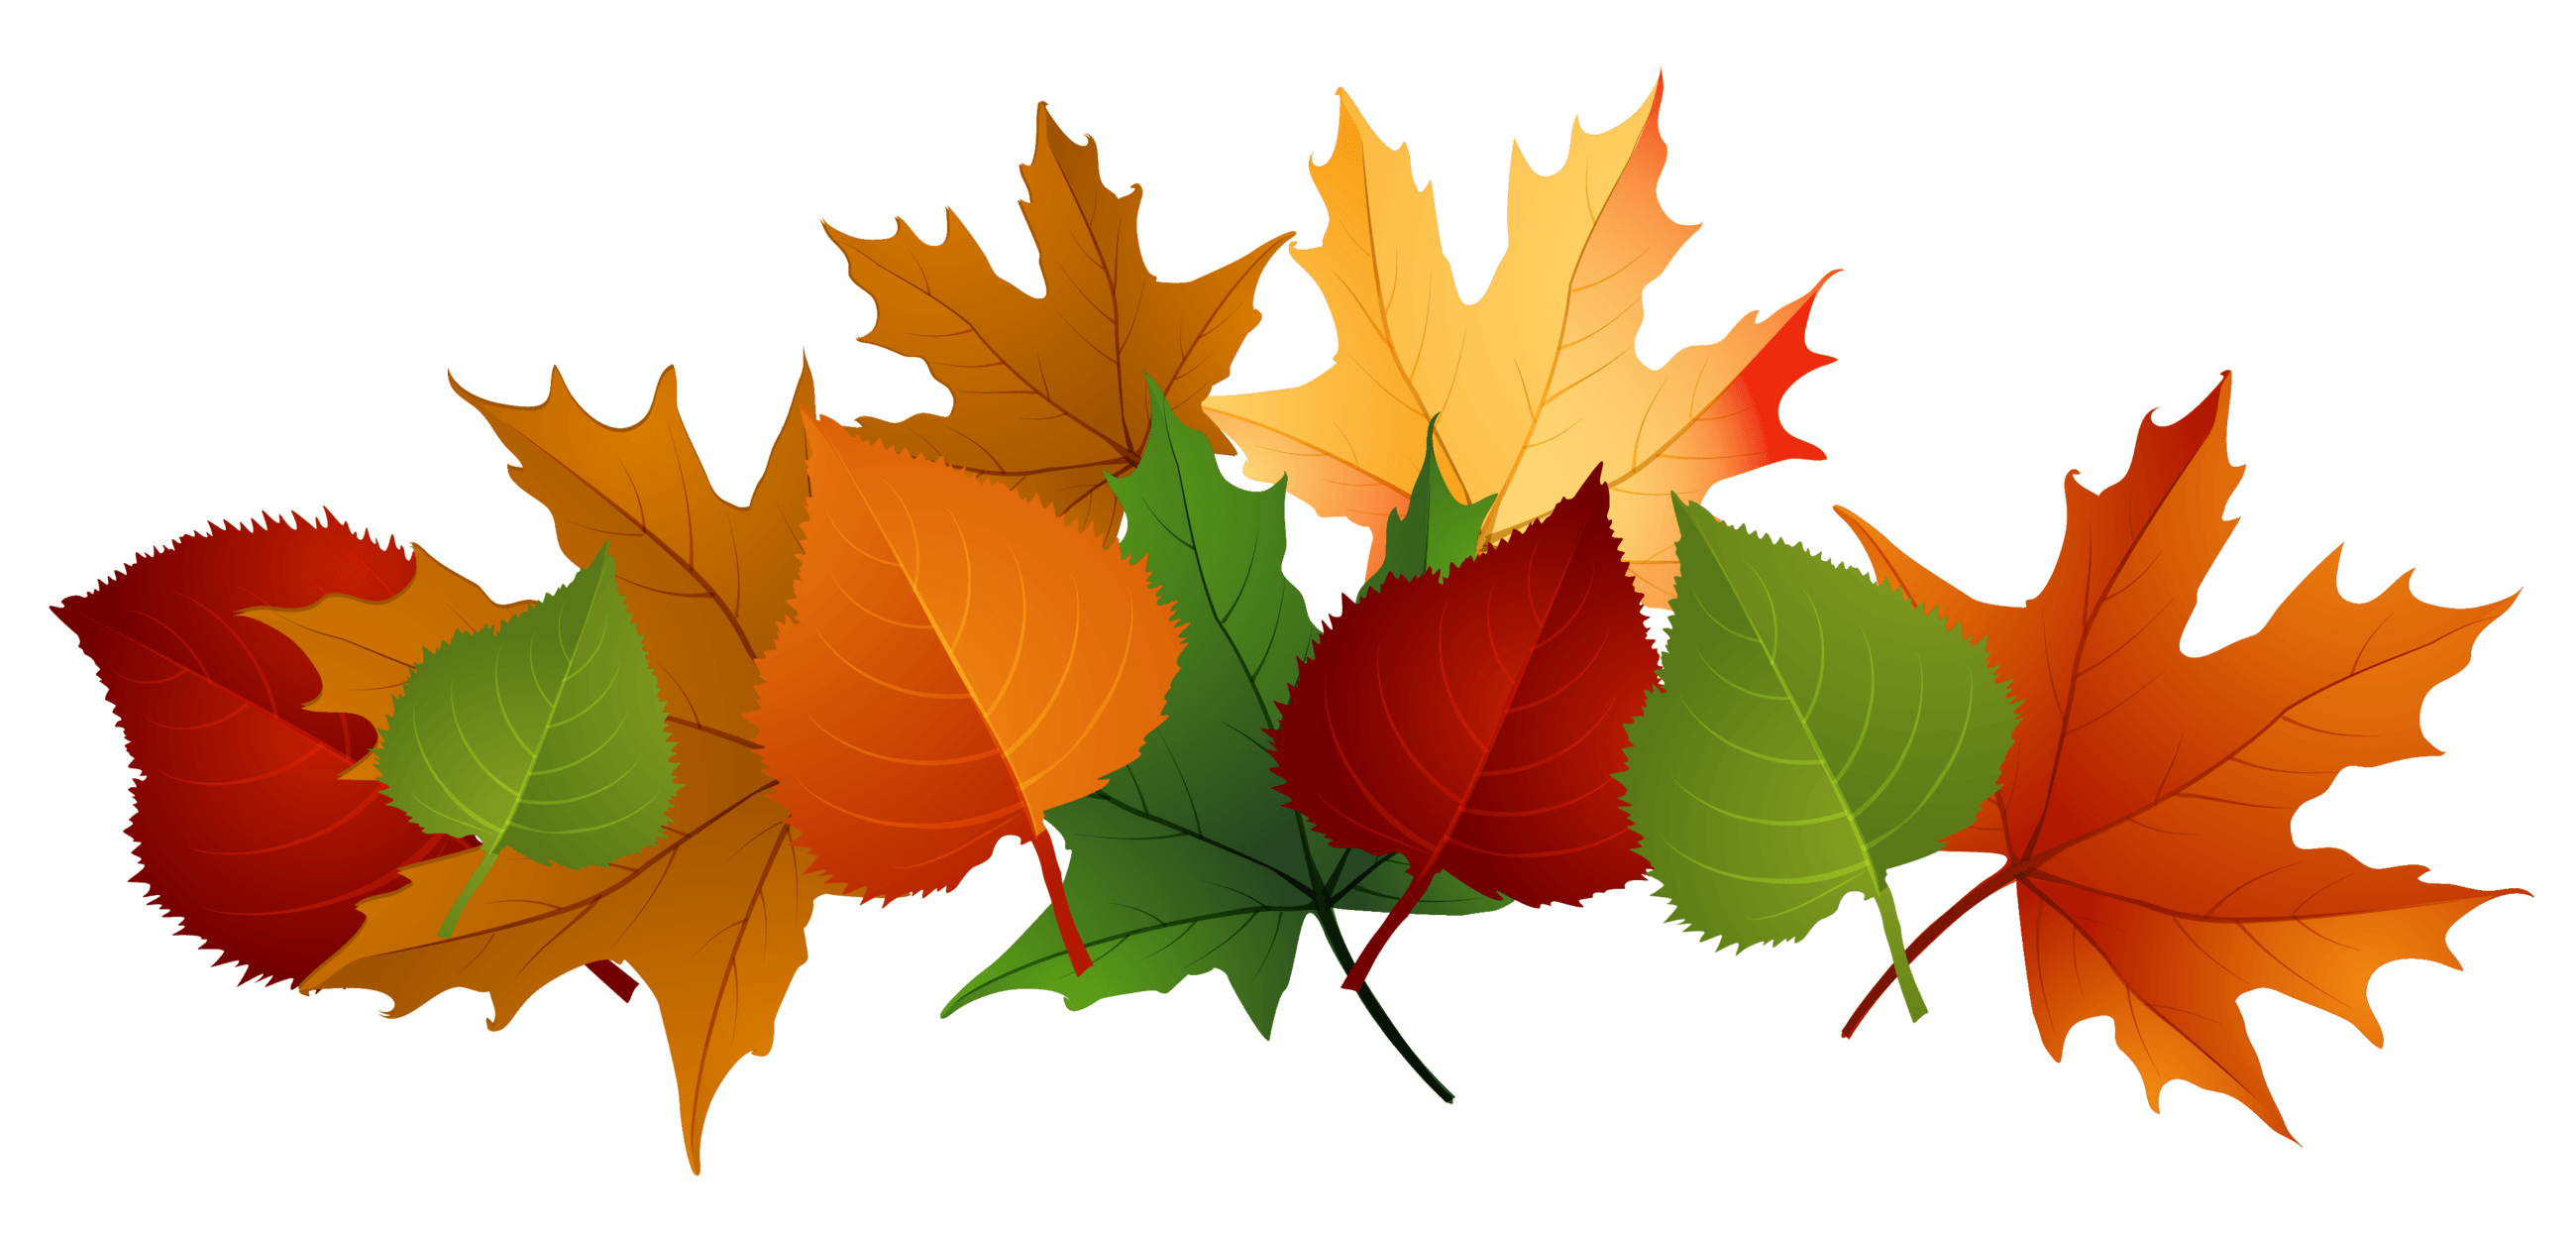 Fall leaves tree clipart graphic freeuse library Pile Of Leaves Drawing at GetDrawings.com | Free for personal use ... graphic freeuse library